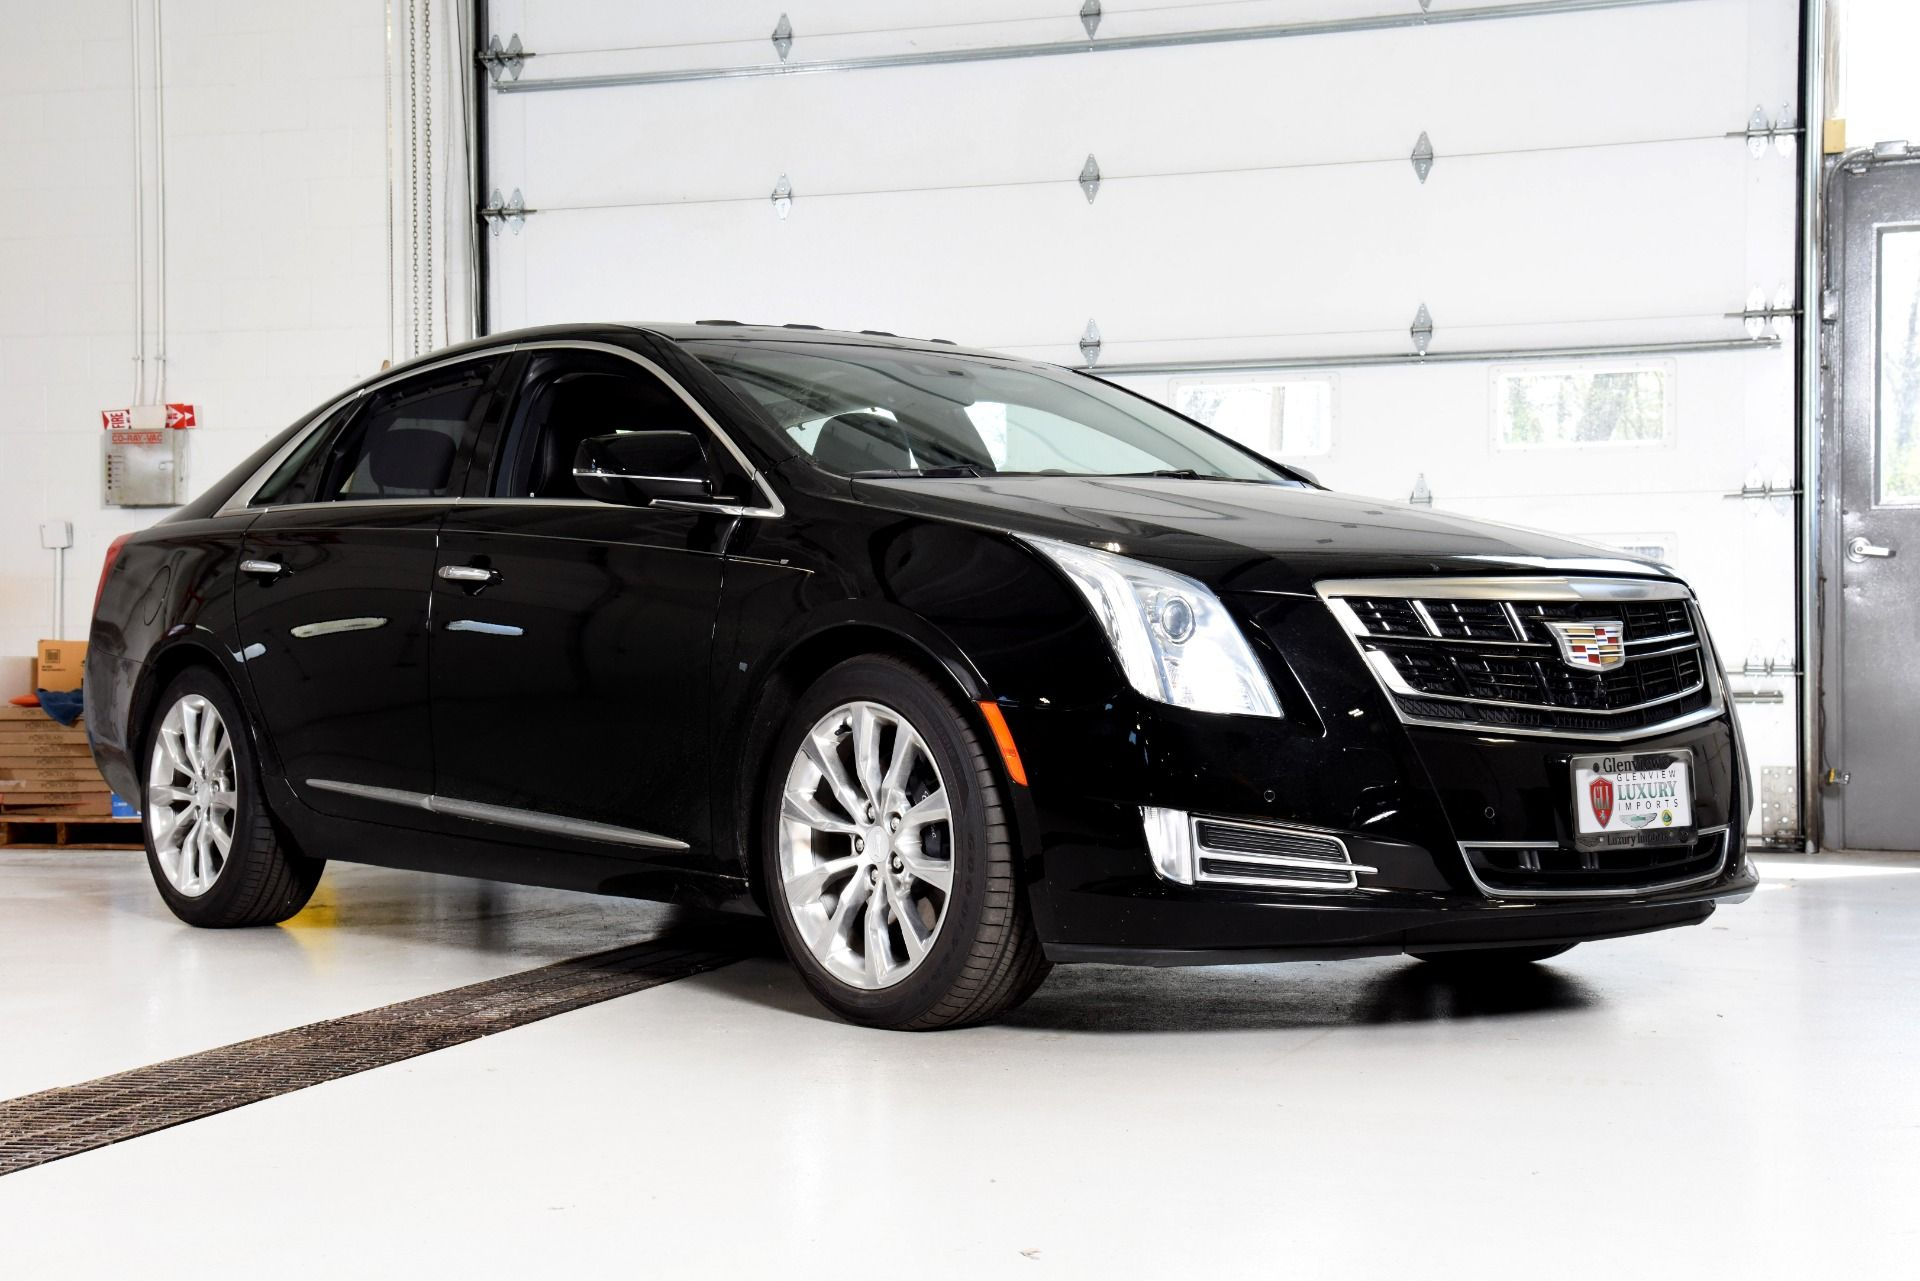 2019 Cadillac Xts Premium See Models And Pricing As Well As Photos And Videos About 2019 Cadillac Xts Premium We Reviews The In 2020 Cadillac Xts Cadillac New Engine